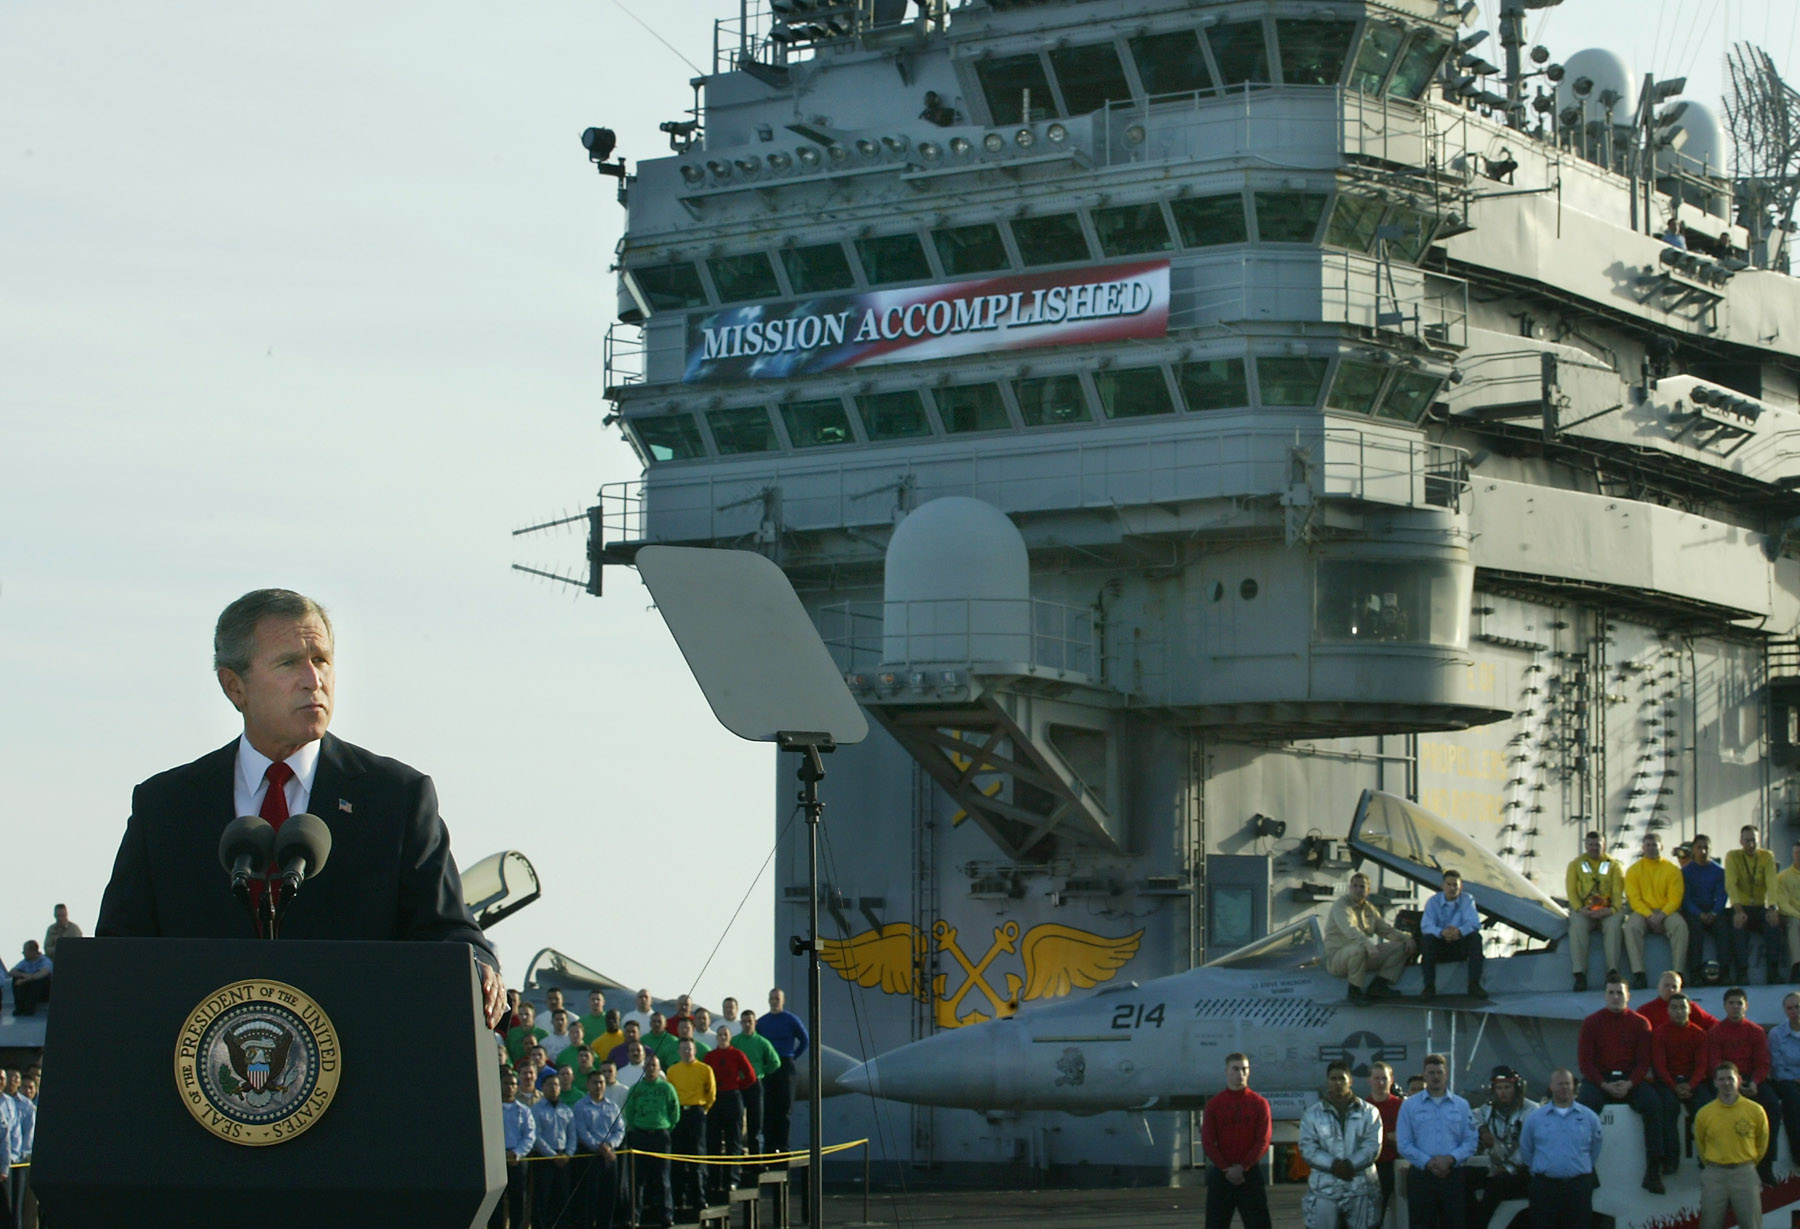 President George W. Bush delivers a speech to on the flight deck of the aircraft carrier USS Abraham Lincoln on May 1, 2003.